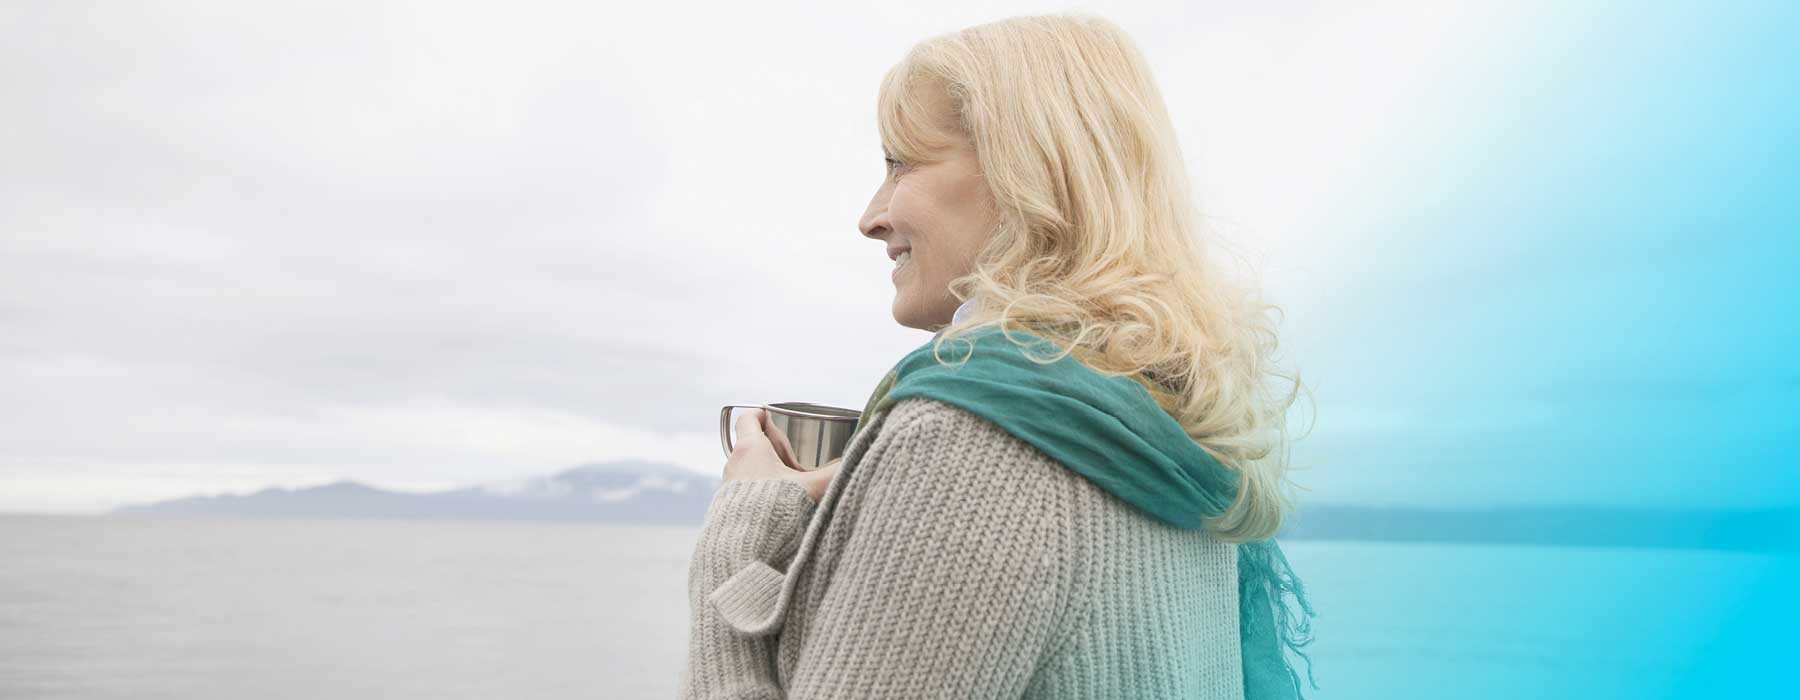 Woman holding mug and looking out to sea. Are you getting enough iodine?